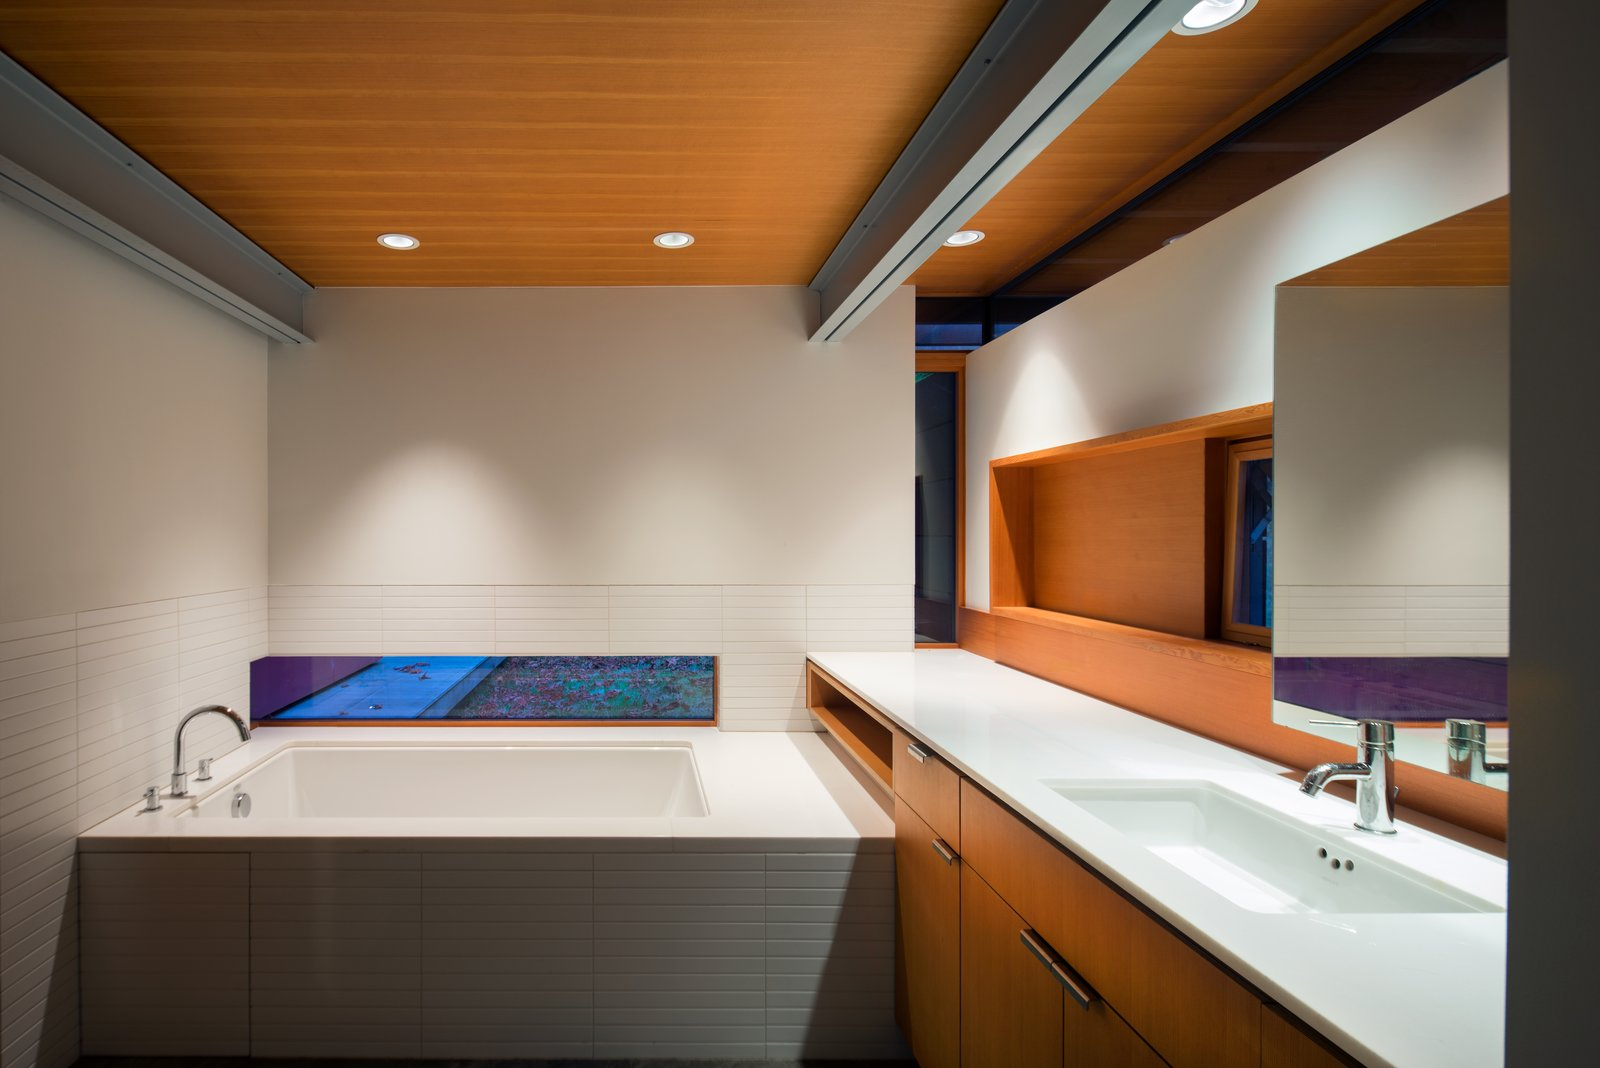 Bath Room A horizontal sliver of window allows light into the bathroom, with tile by Ann Sacks, a Zuma Collection C Series tub, a Kohler tub filler, and an Elkay faucet.  Photo 13 of 16 in An Off-the-Grid Island Home for a Seattle Music Producer